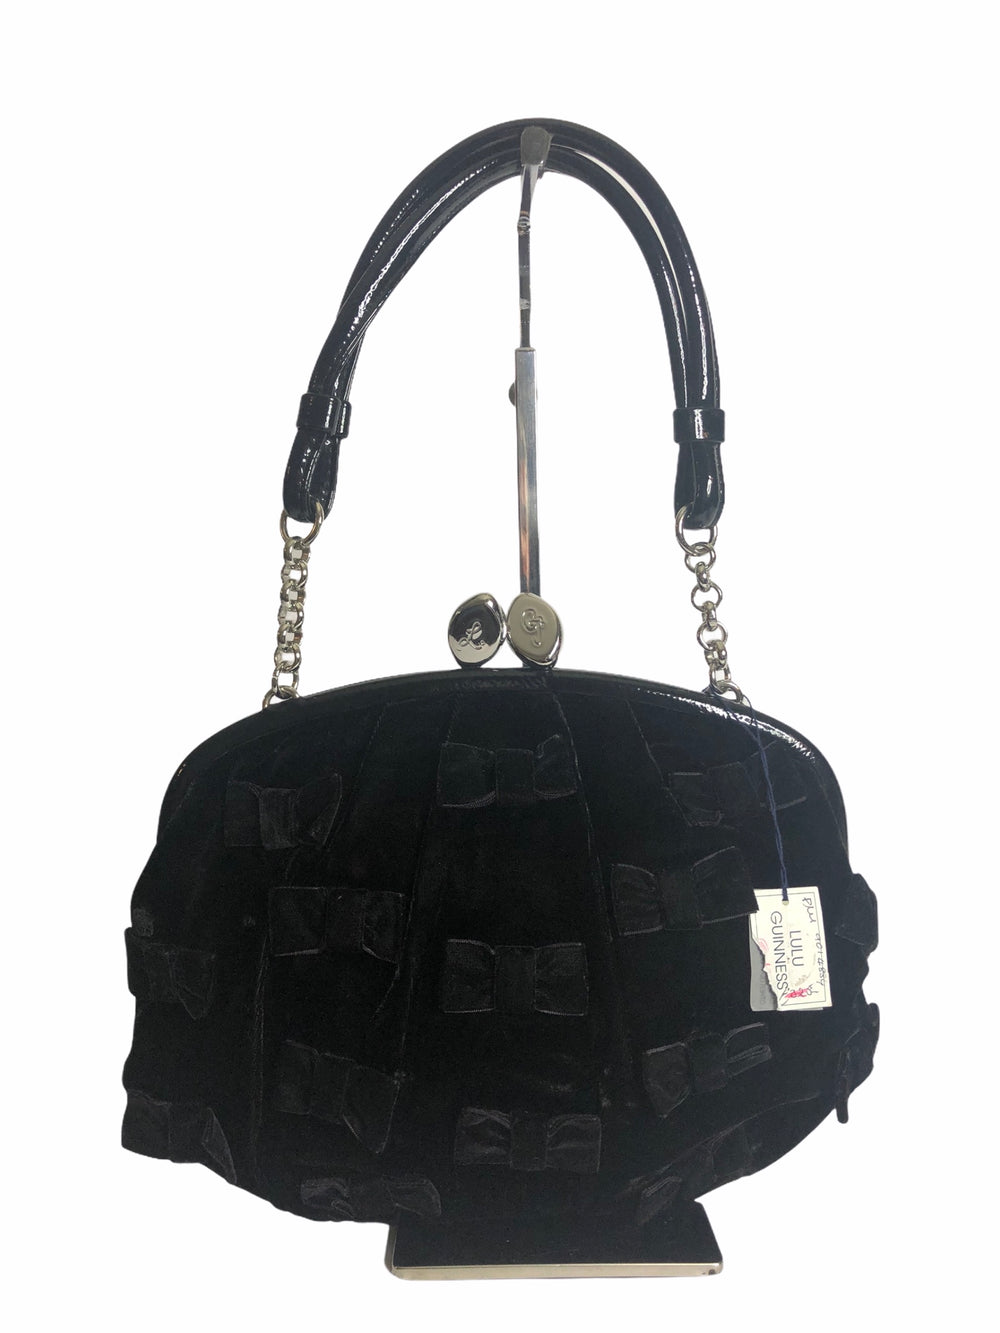 LuLu Guinness Black Velvet Shoulder Bag - As Seen on Instagram 29/11/20